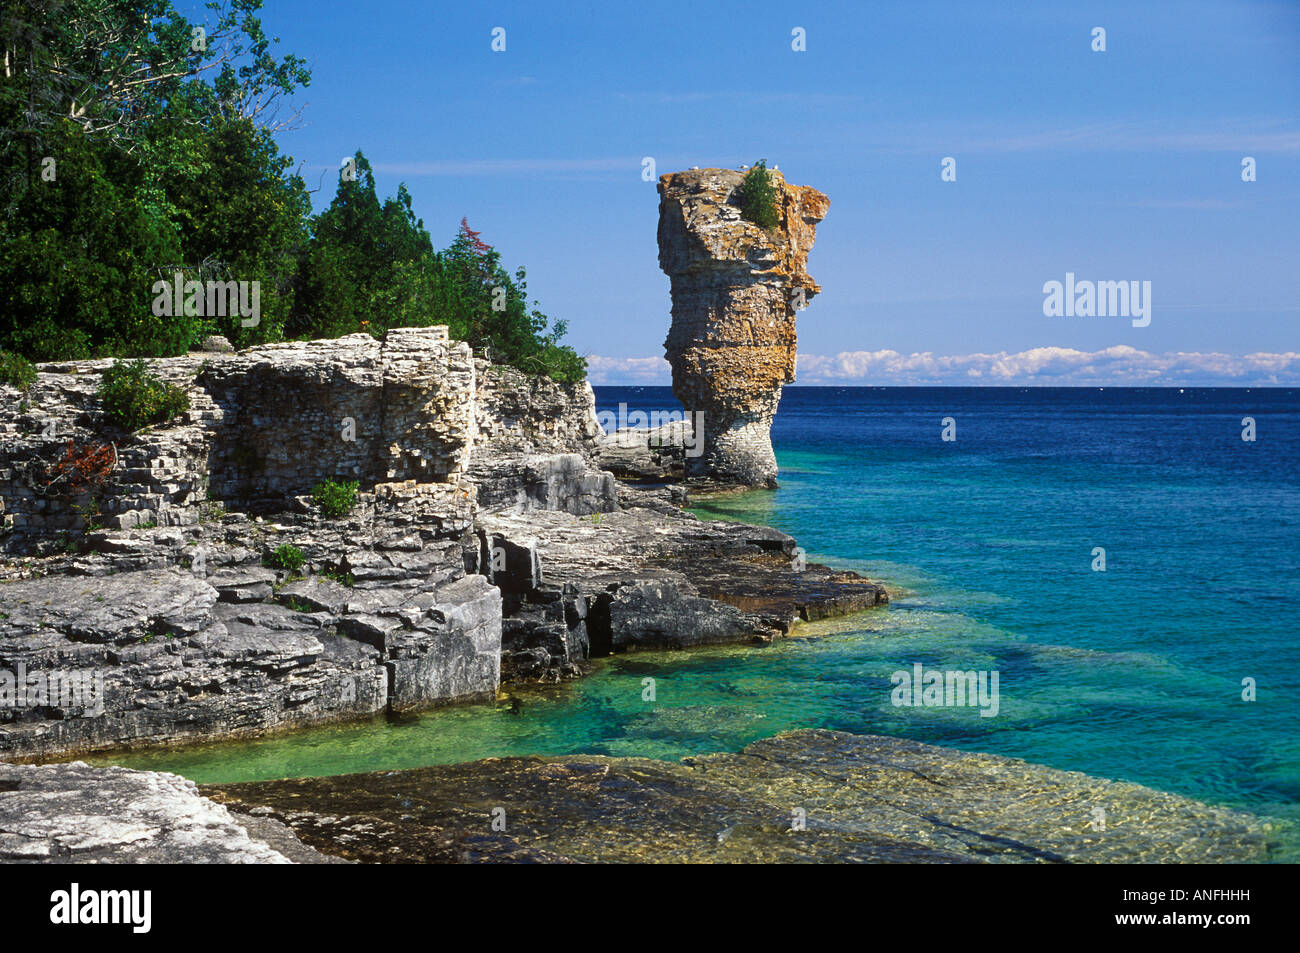 Live Wallpaper Fall Hd Flowerpot Island Fathom Five National Marine Park